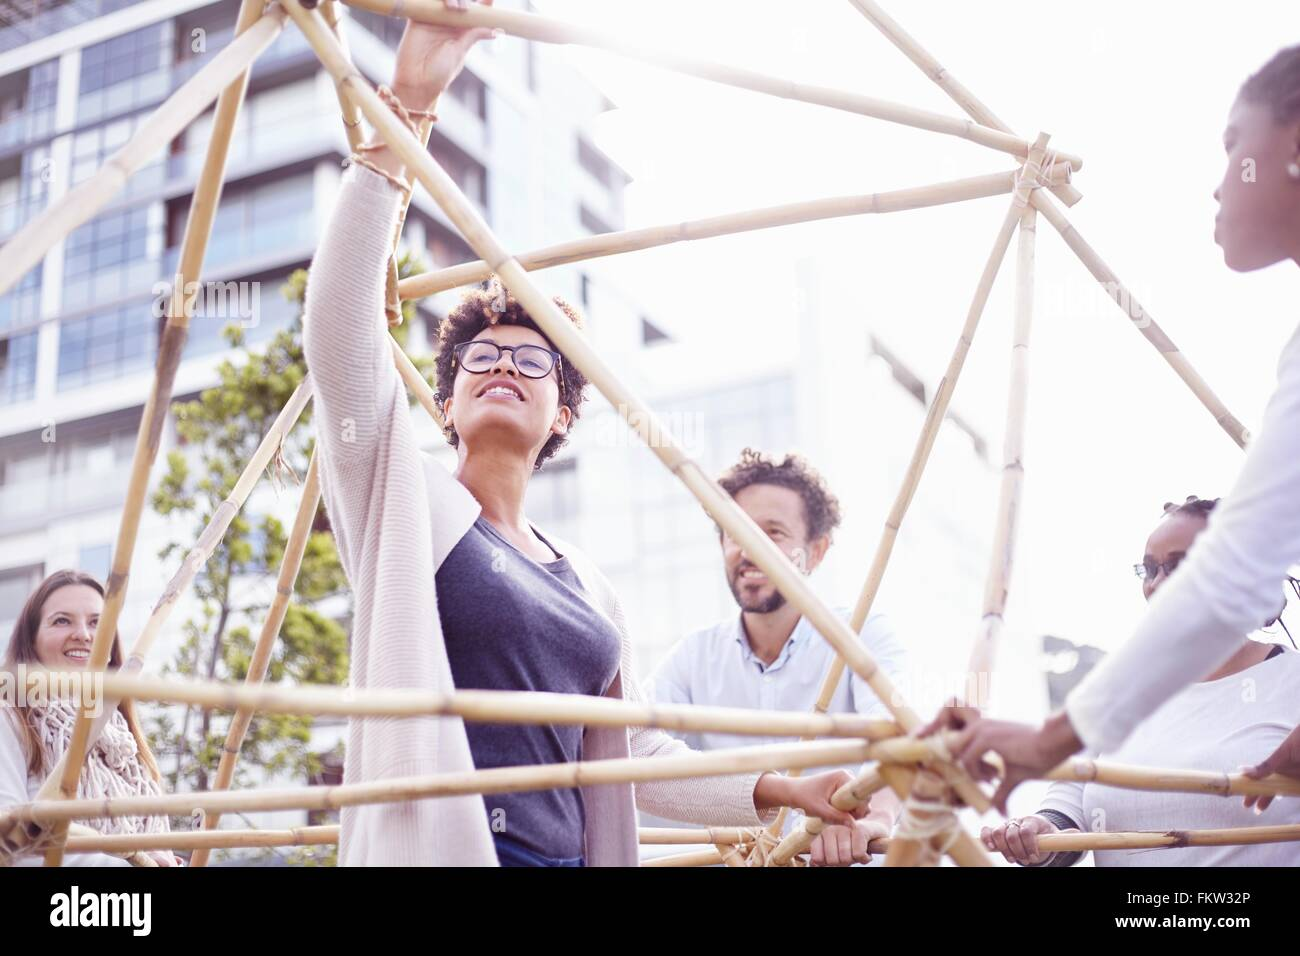 Low angle view   colleagues in team building task building wooden structure - Stock Image